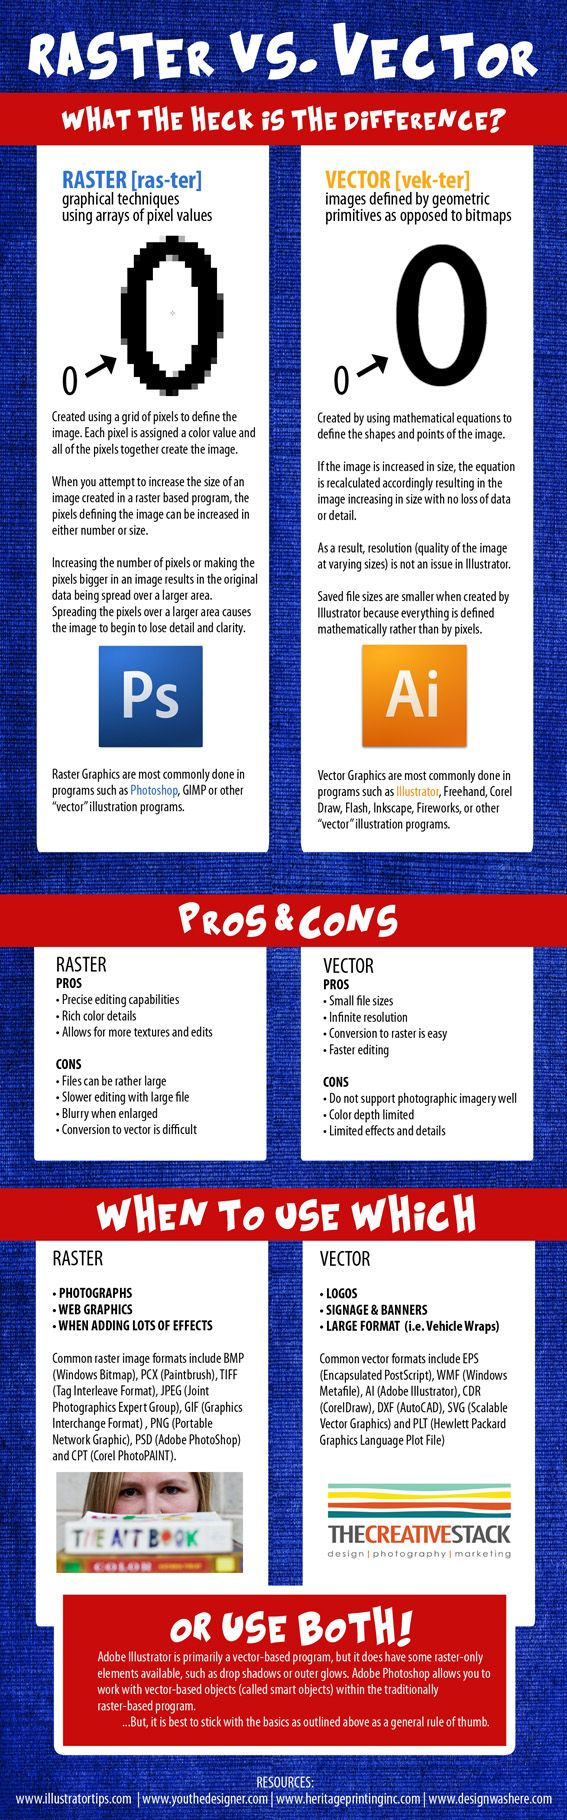 Raster Vs. Vector #infographic #graphicdesign. Comparison between graphic file formats.